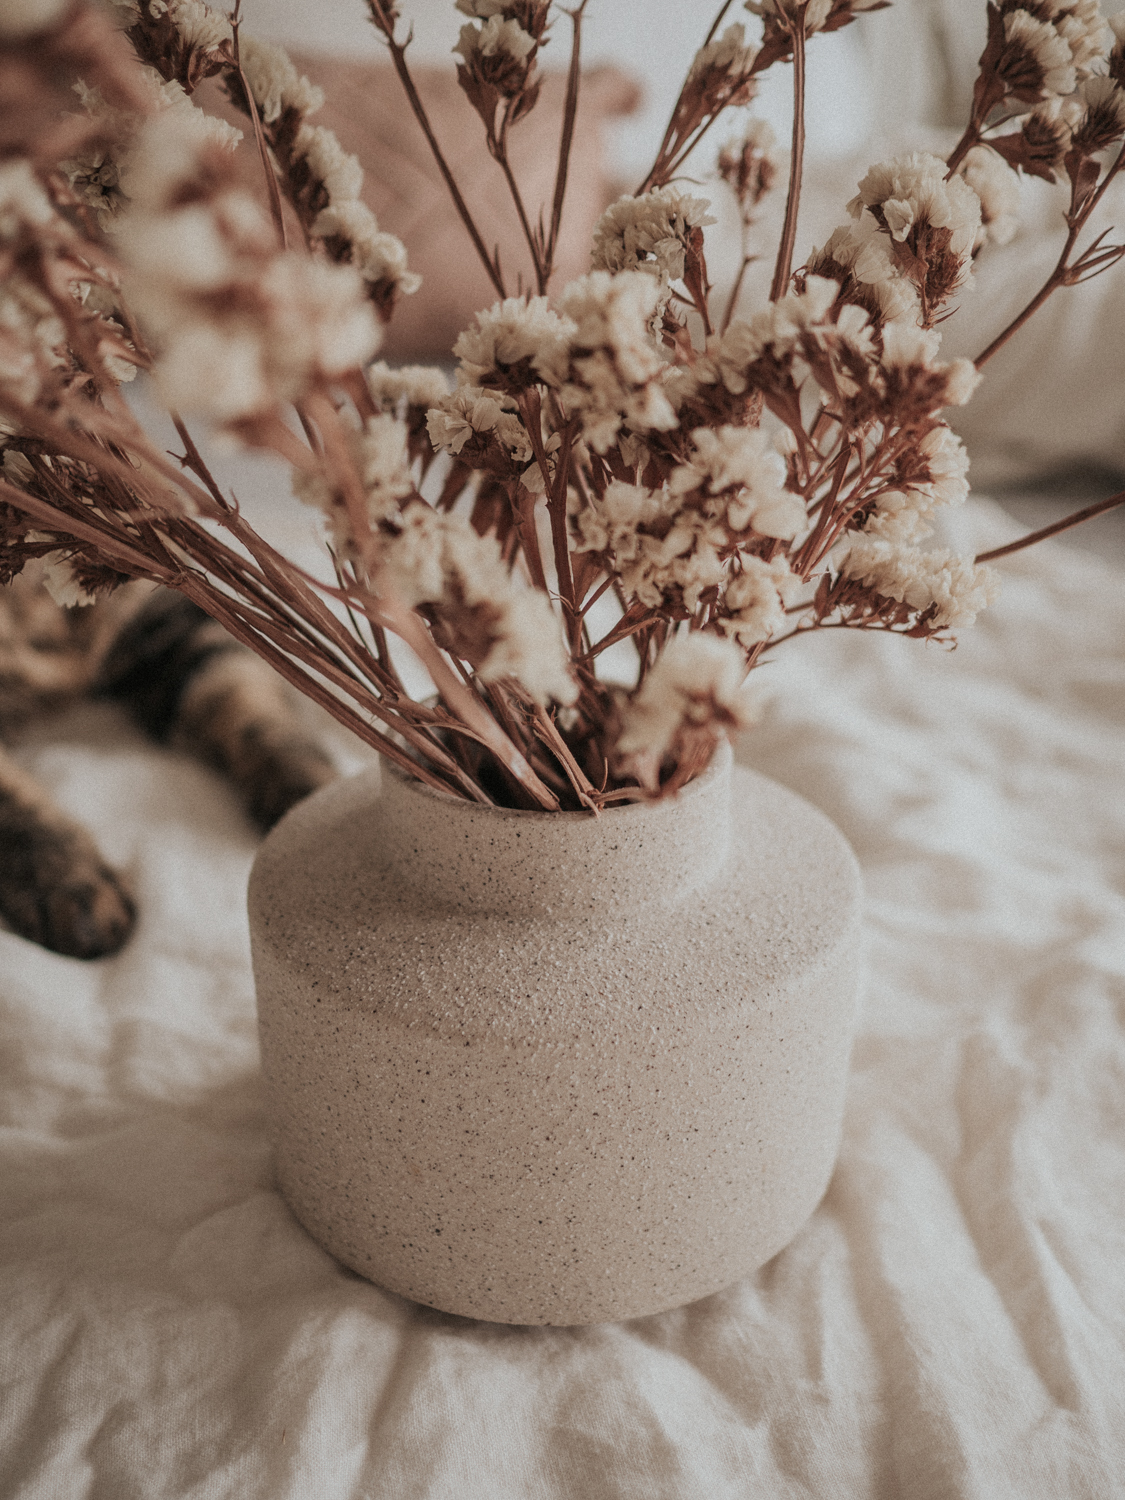 By Molle beige vase sits on a bed with Autumnal dried flowers